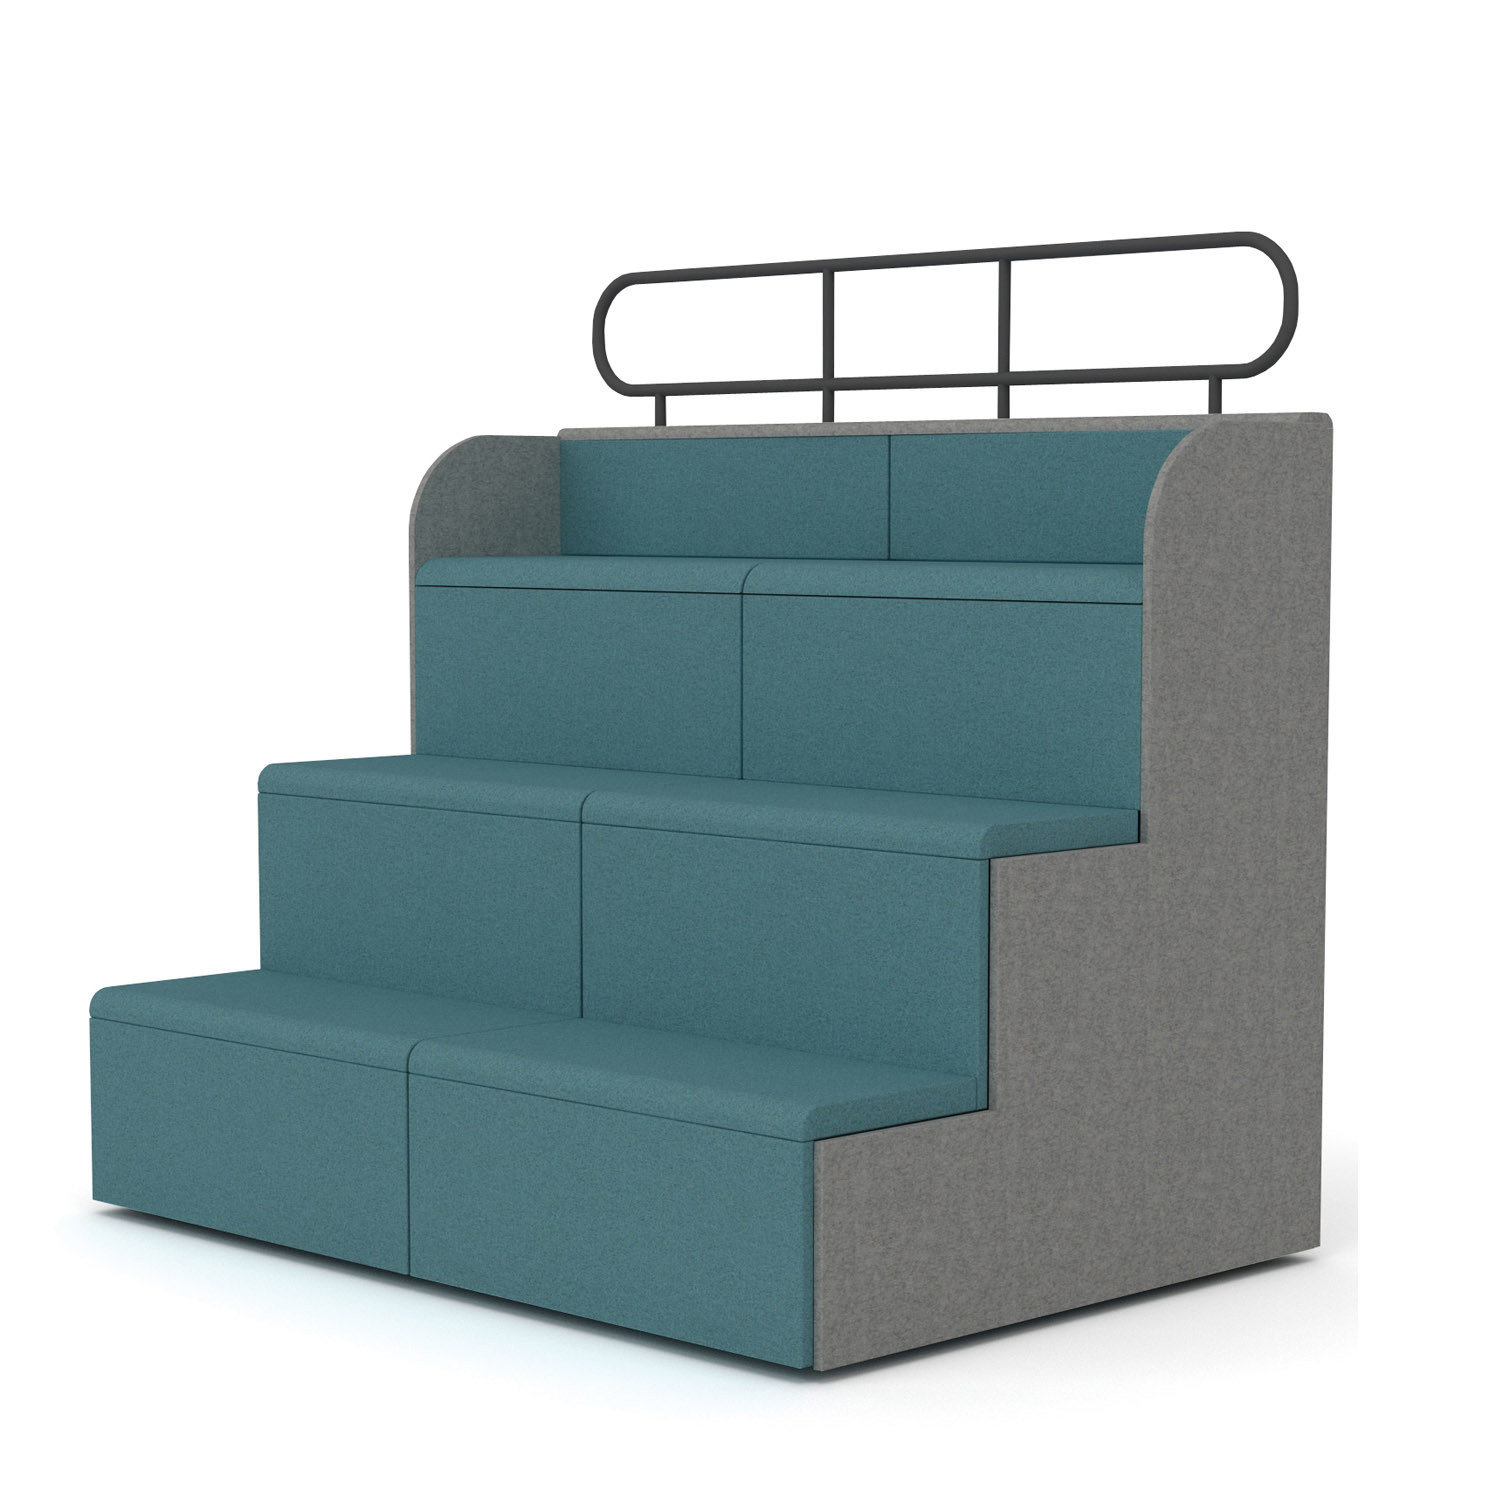 Steps Straight Modular Seating SSE1